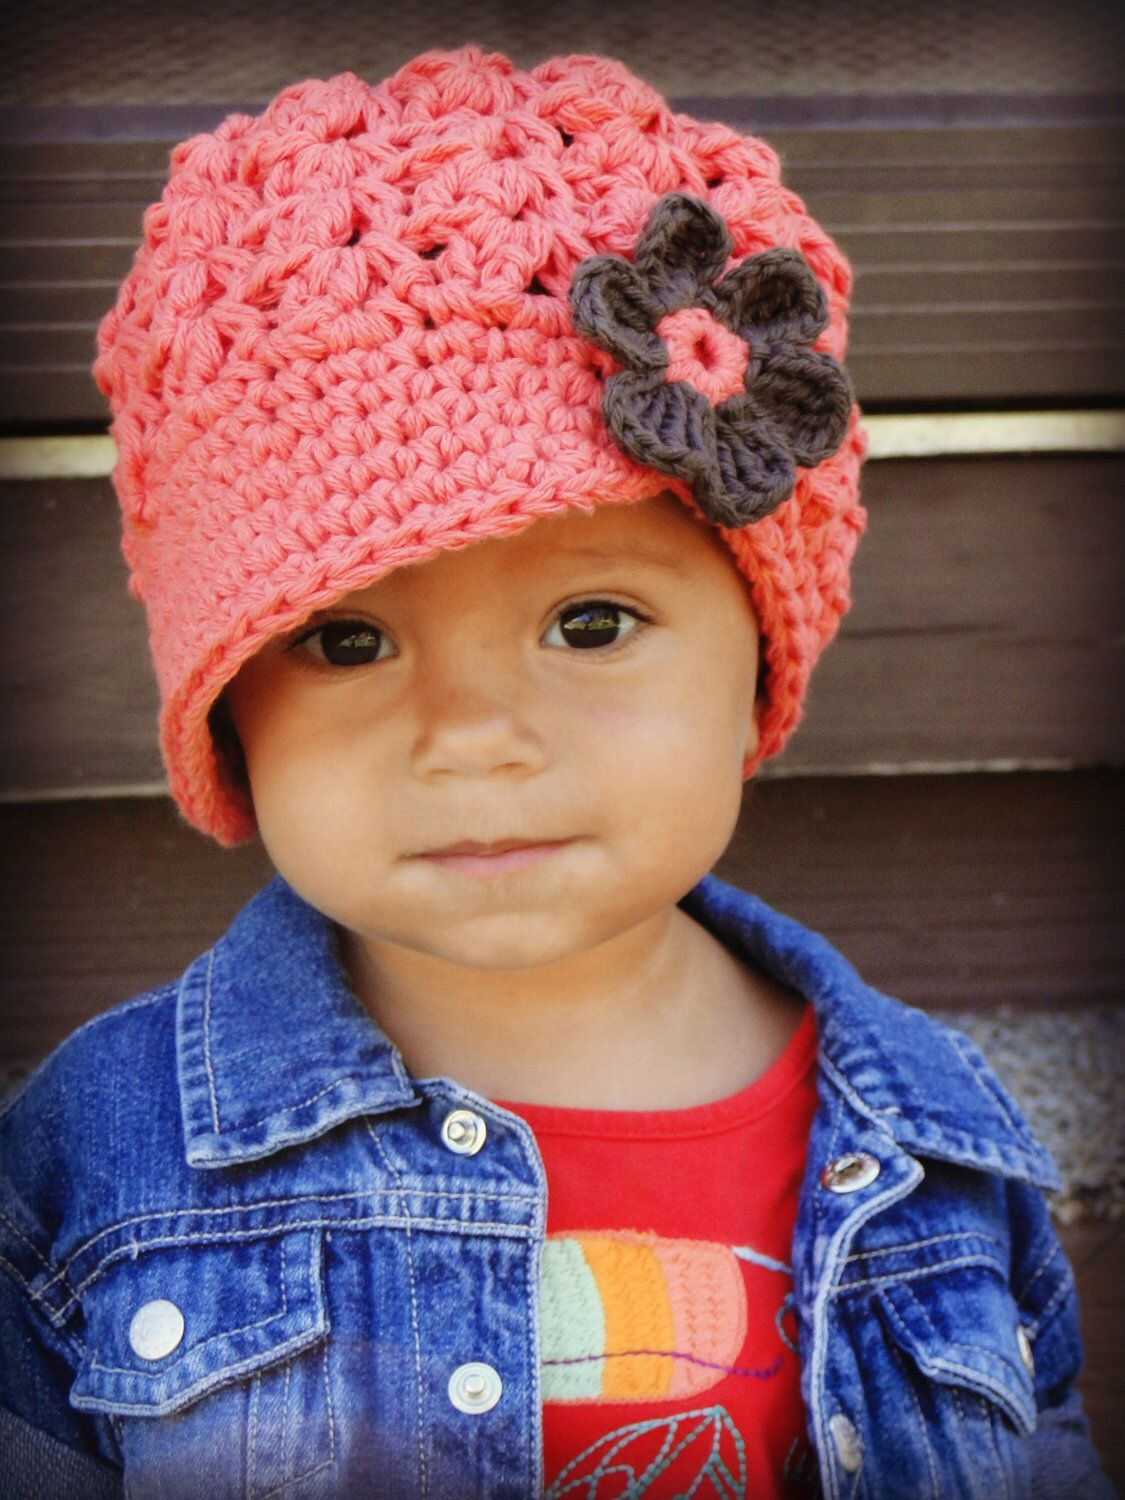 65842b154d0 Crochet Child Hat Toddler Lady Hat Youngsters by JuneBugBeanies